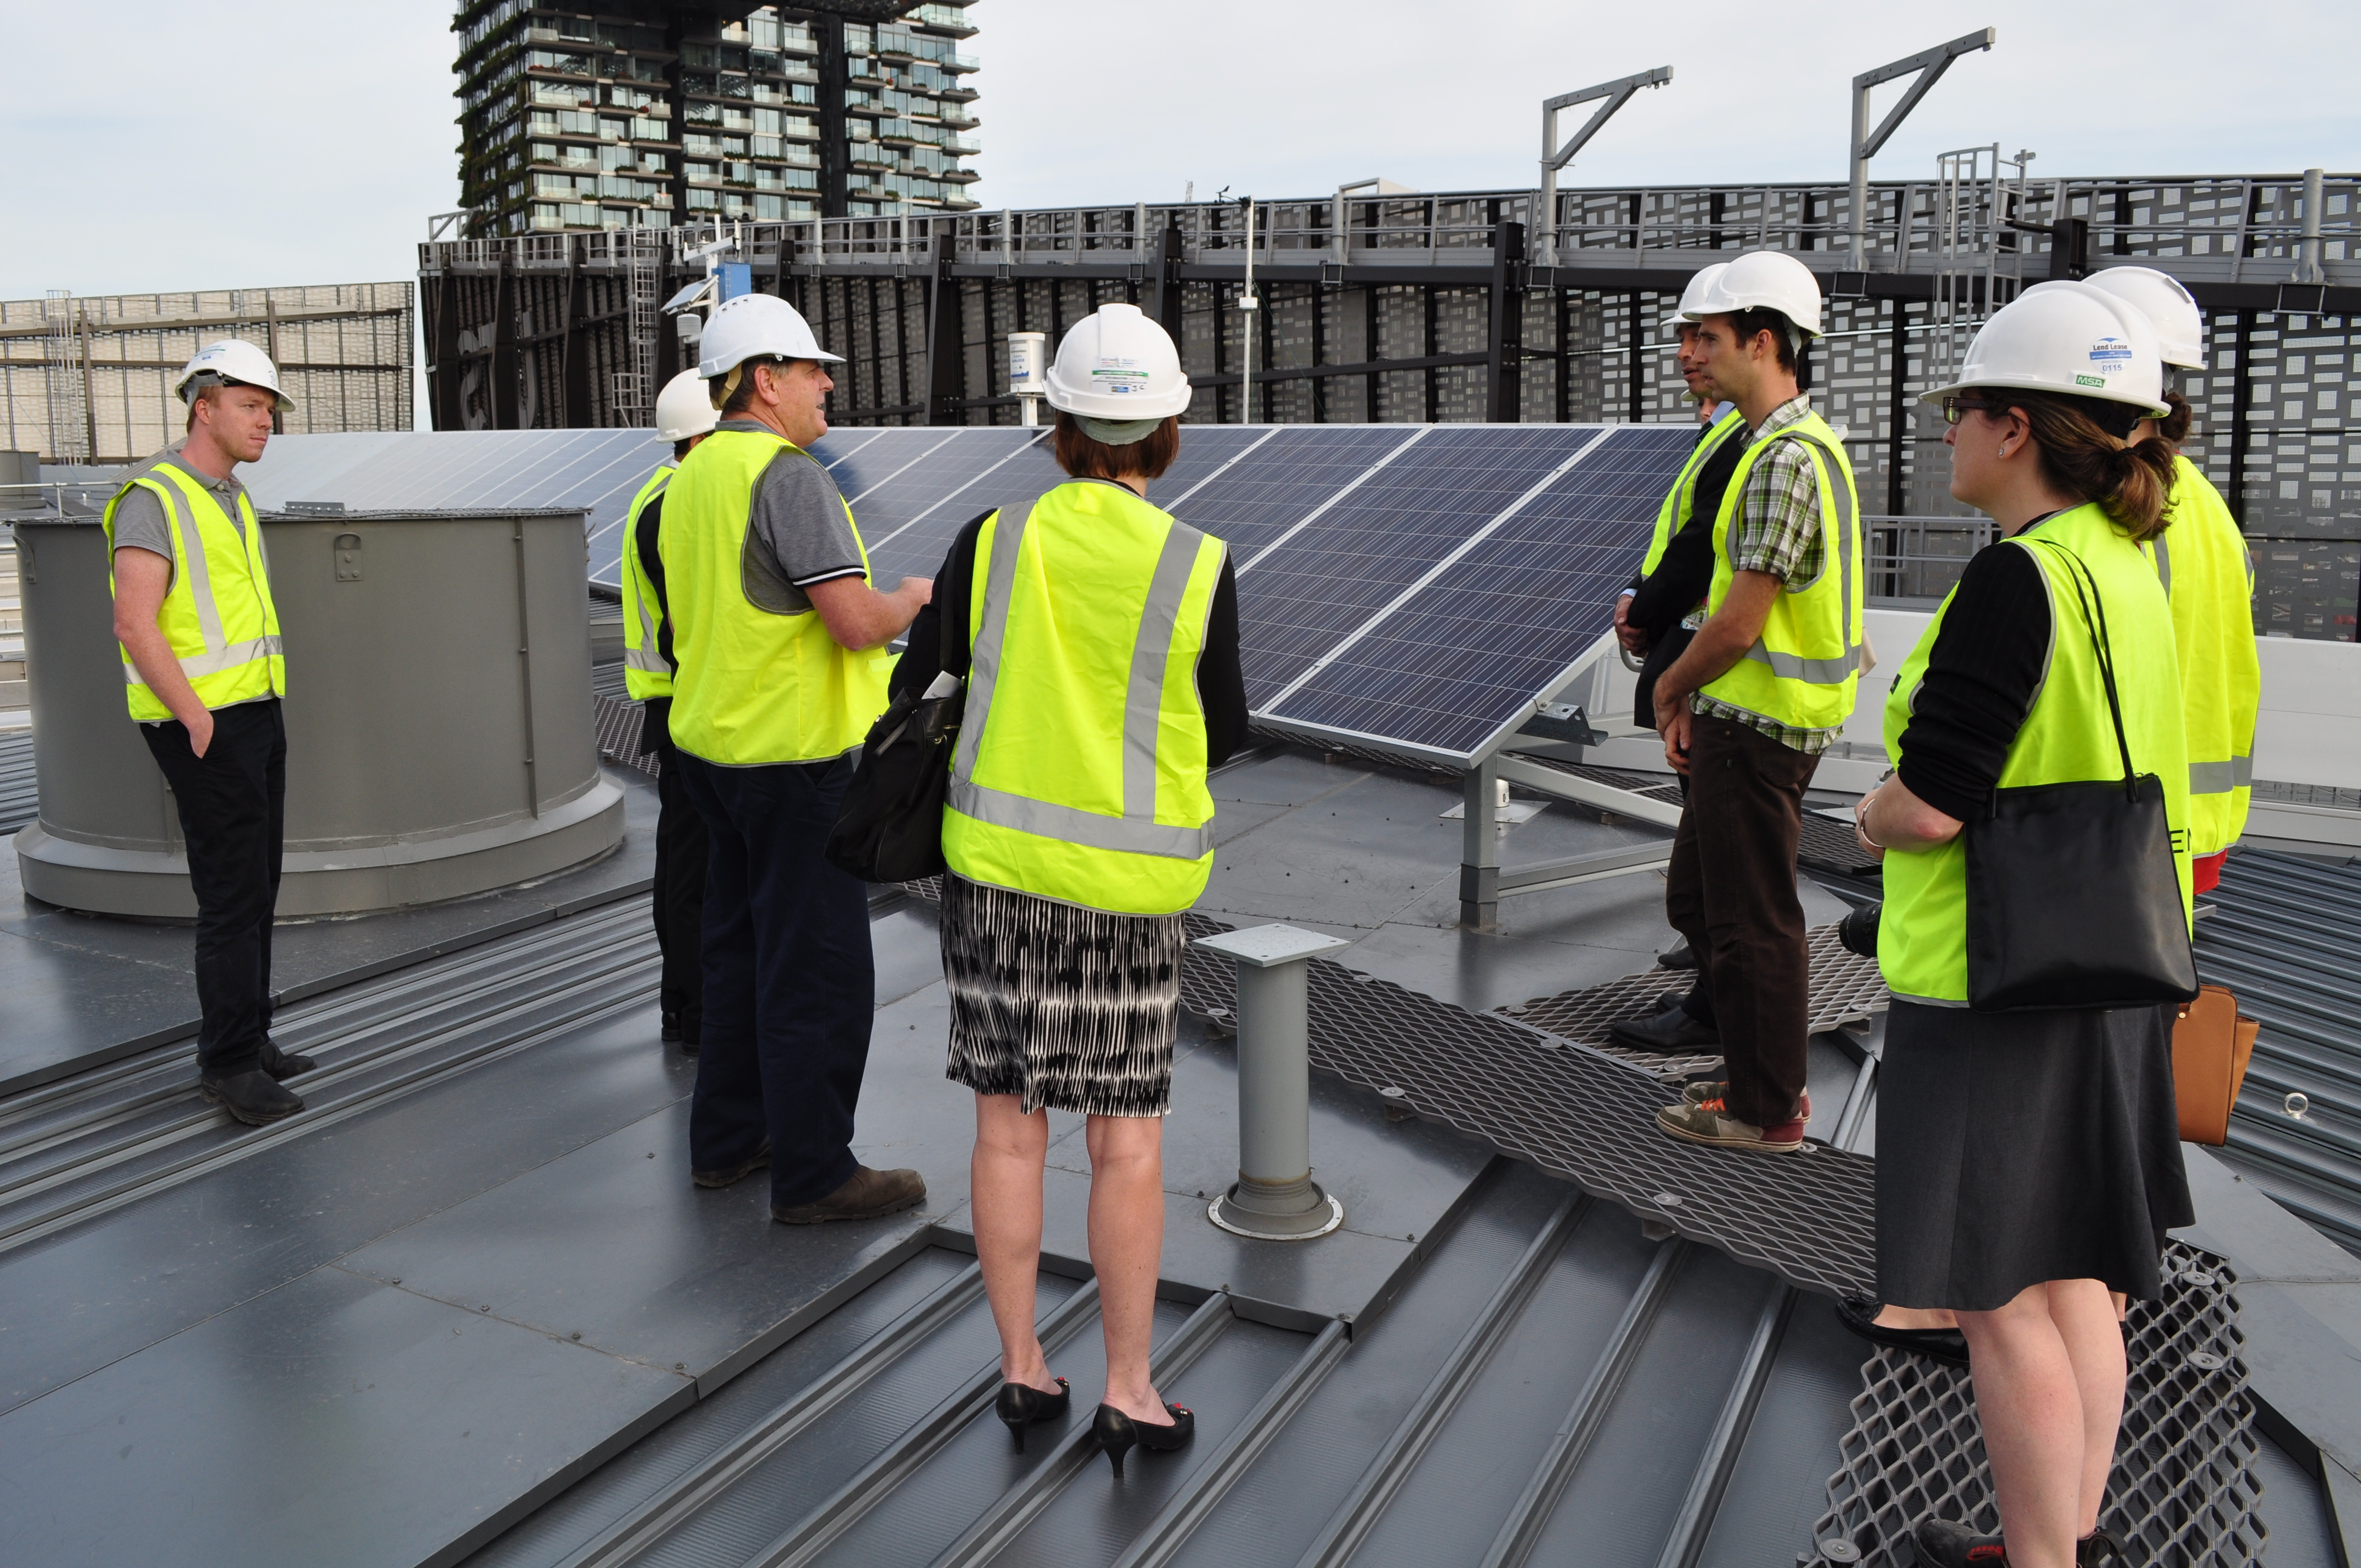 World Bank learn more about the solar renewable technology on the roof of the UTS Engineering and IT Building